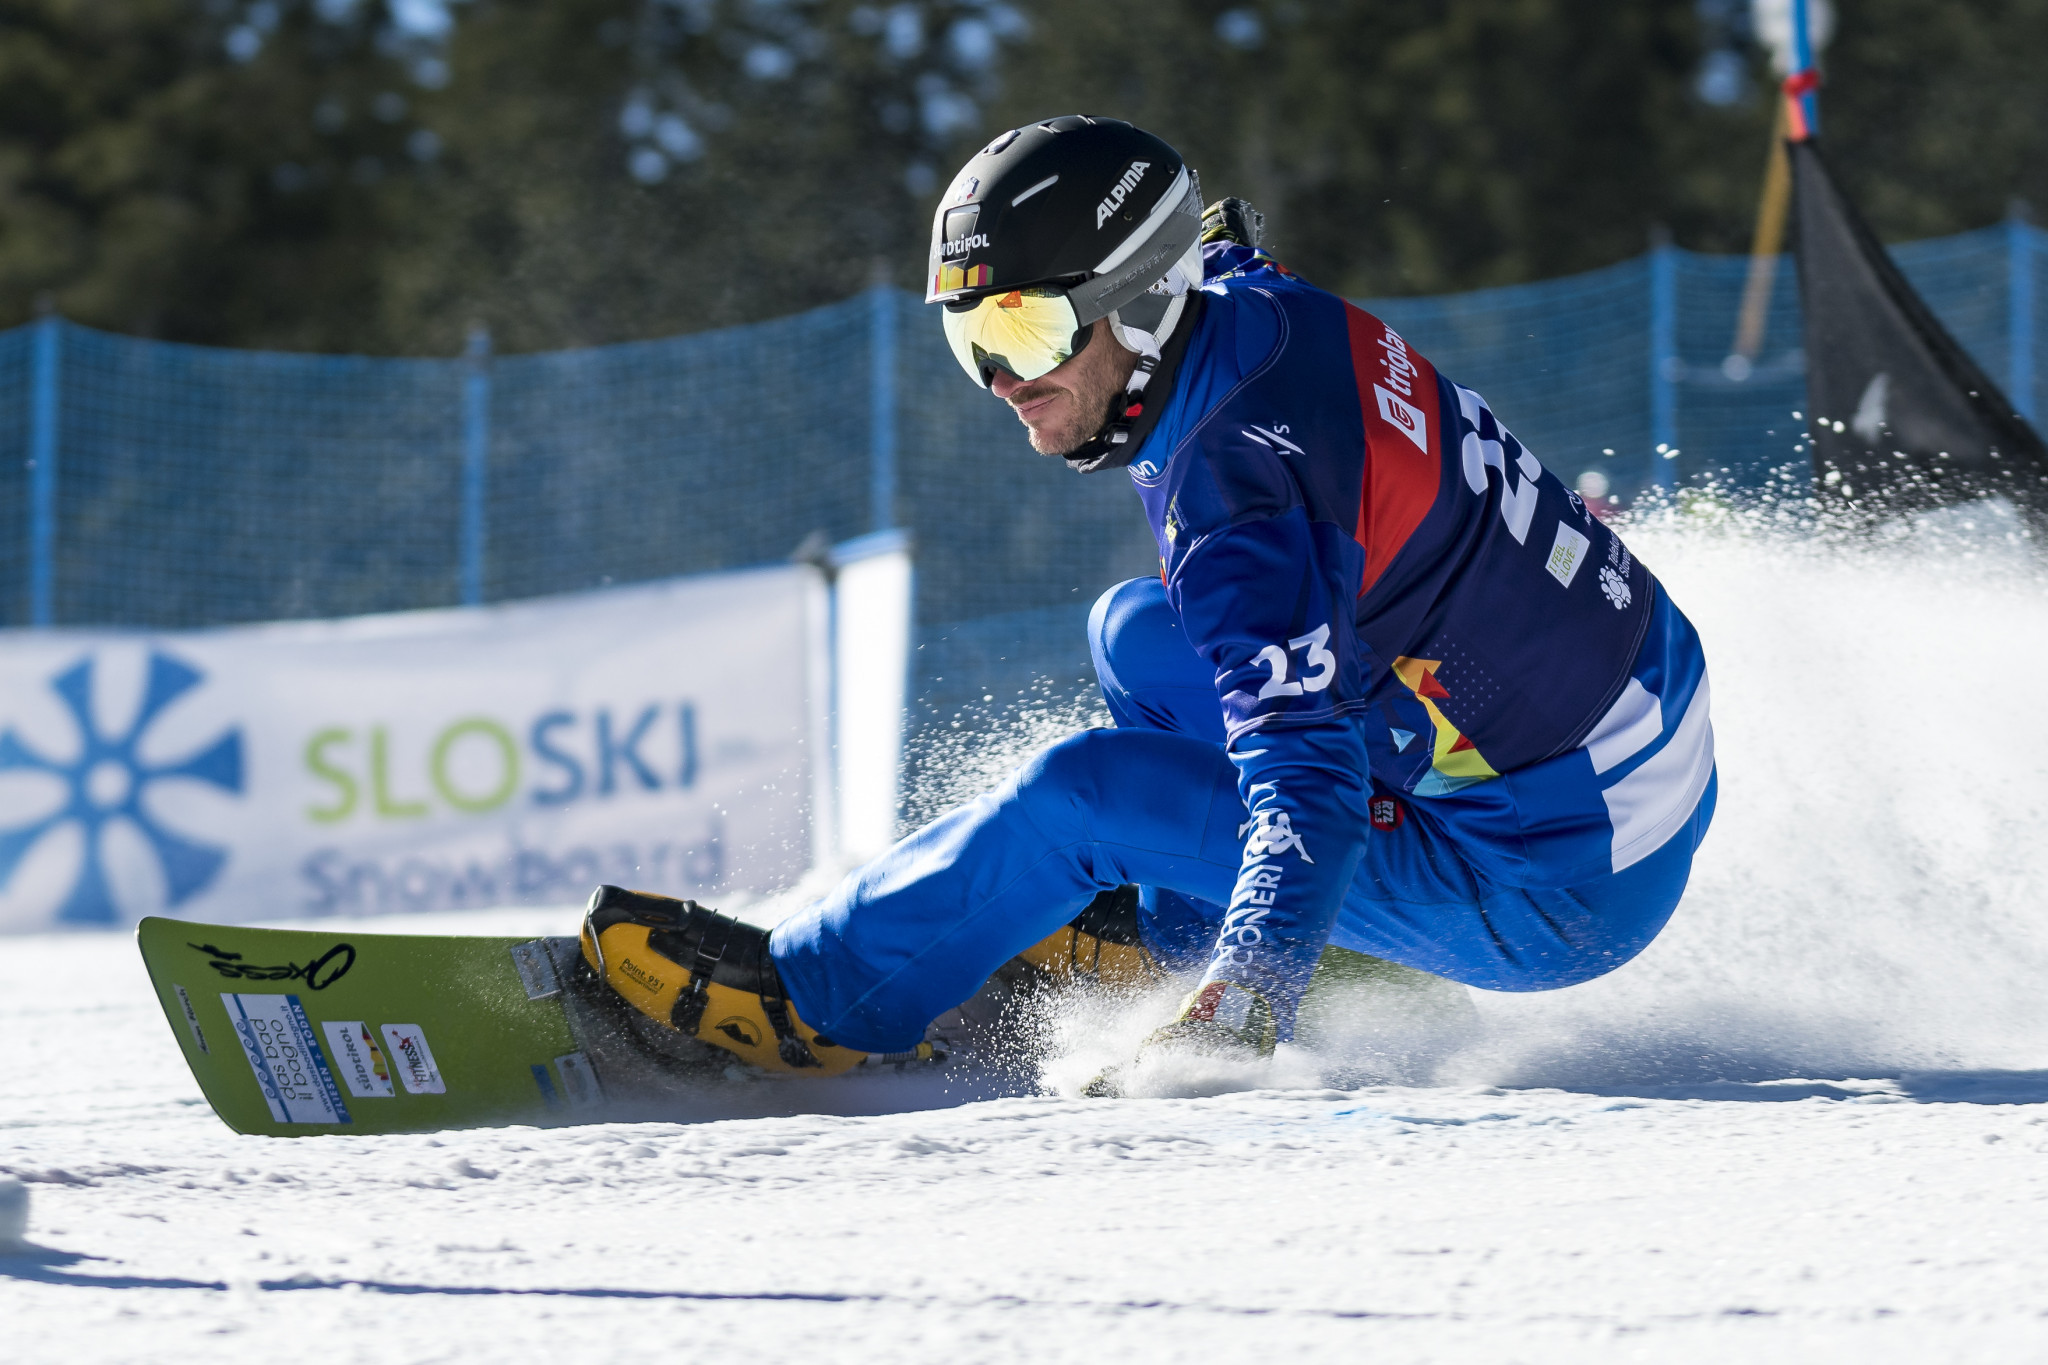 March and Hofmeister crowned overall parallel Snowboard World Cup champions